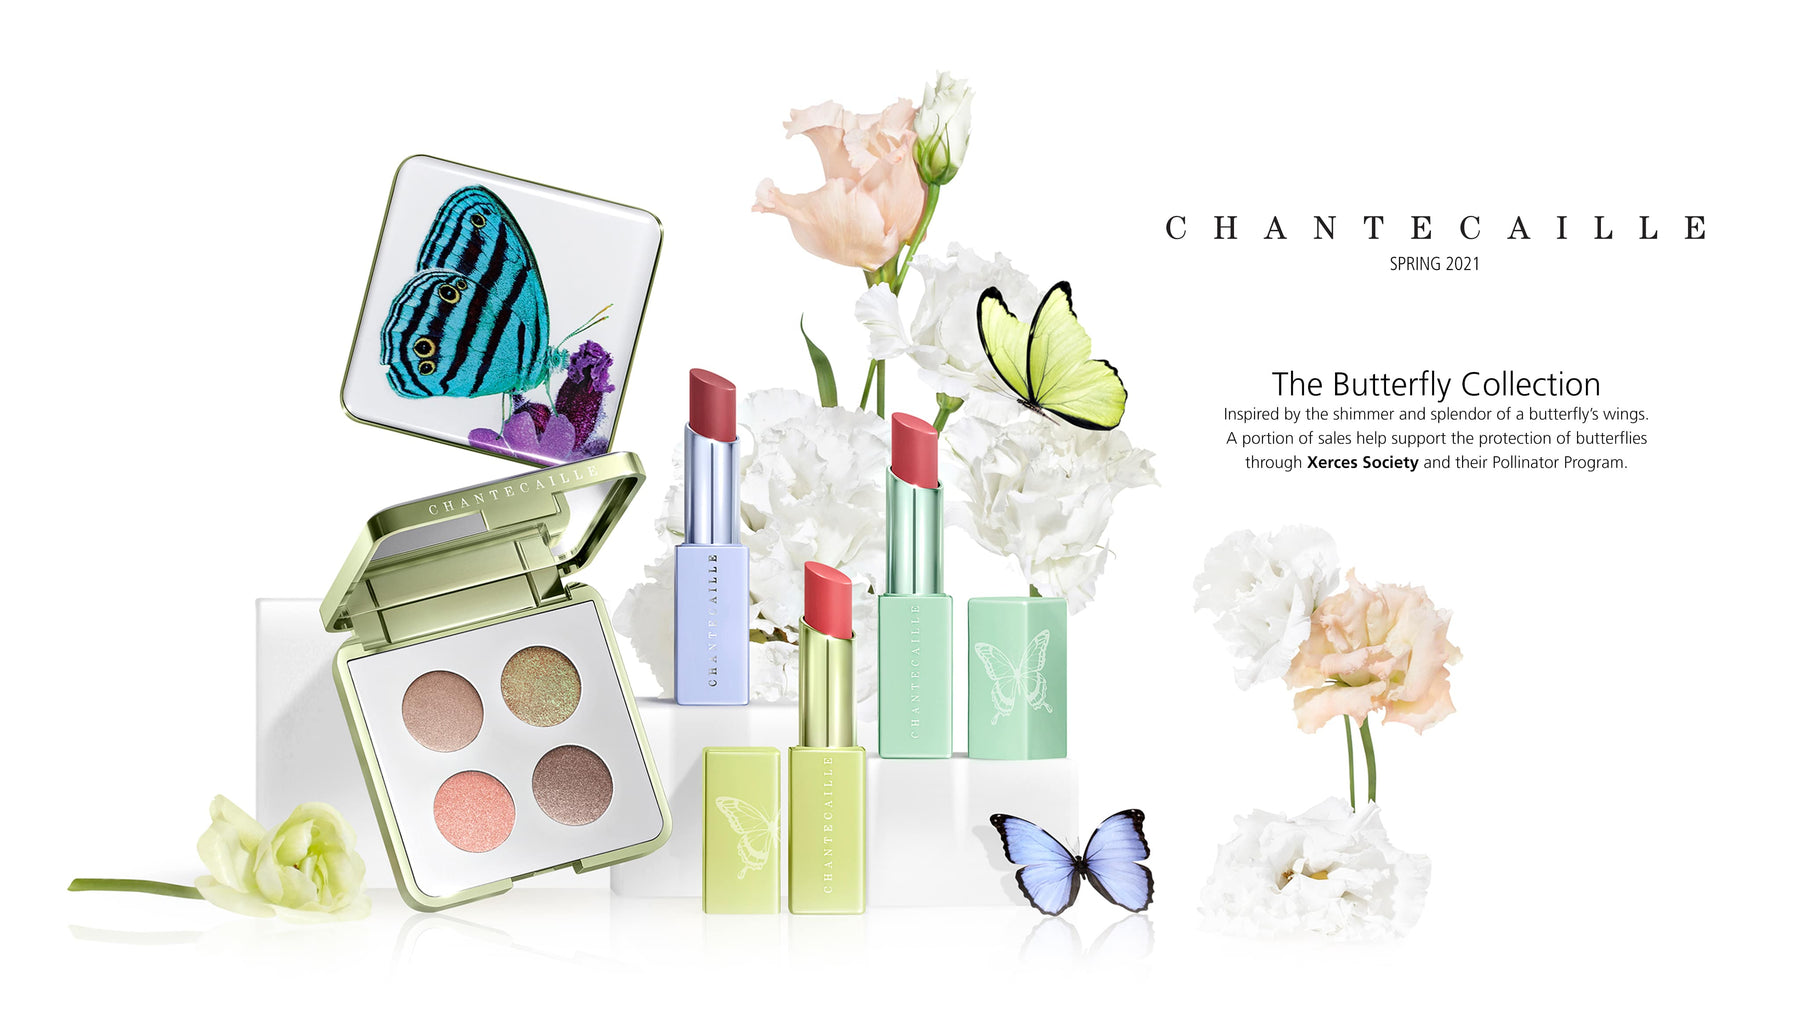 Chantecaille Spring 2021 - The Butterfly Collection Inspired by the shimmer and splendor of a butterfly's wings. A portion of sales help support the protection of butterflies through Xerces Society and their Pollinator Program